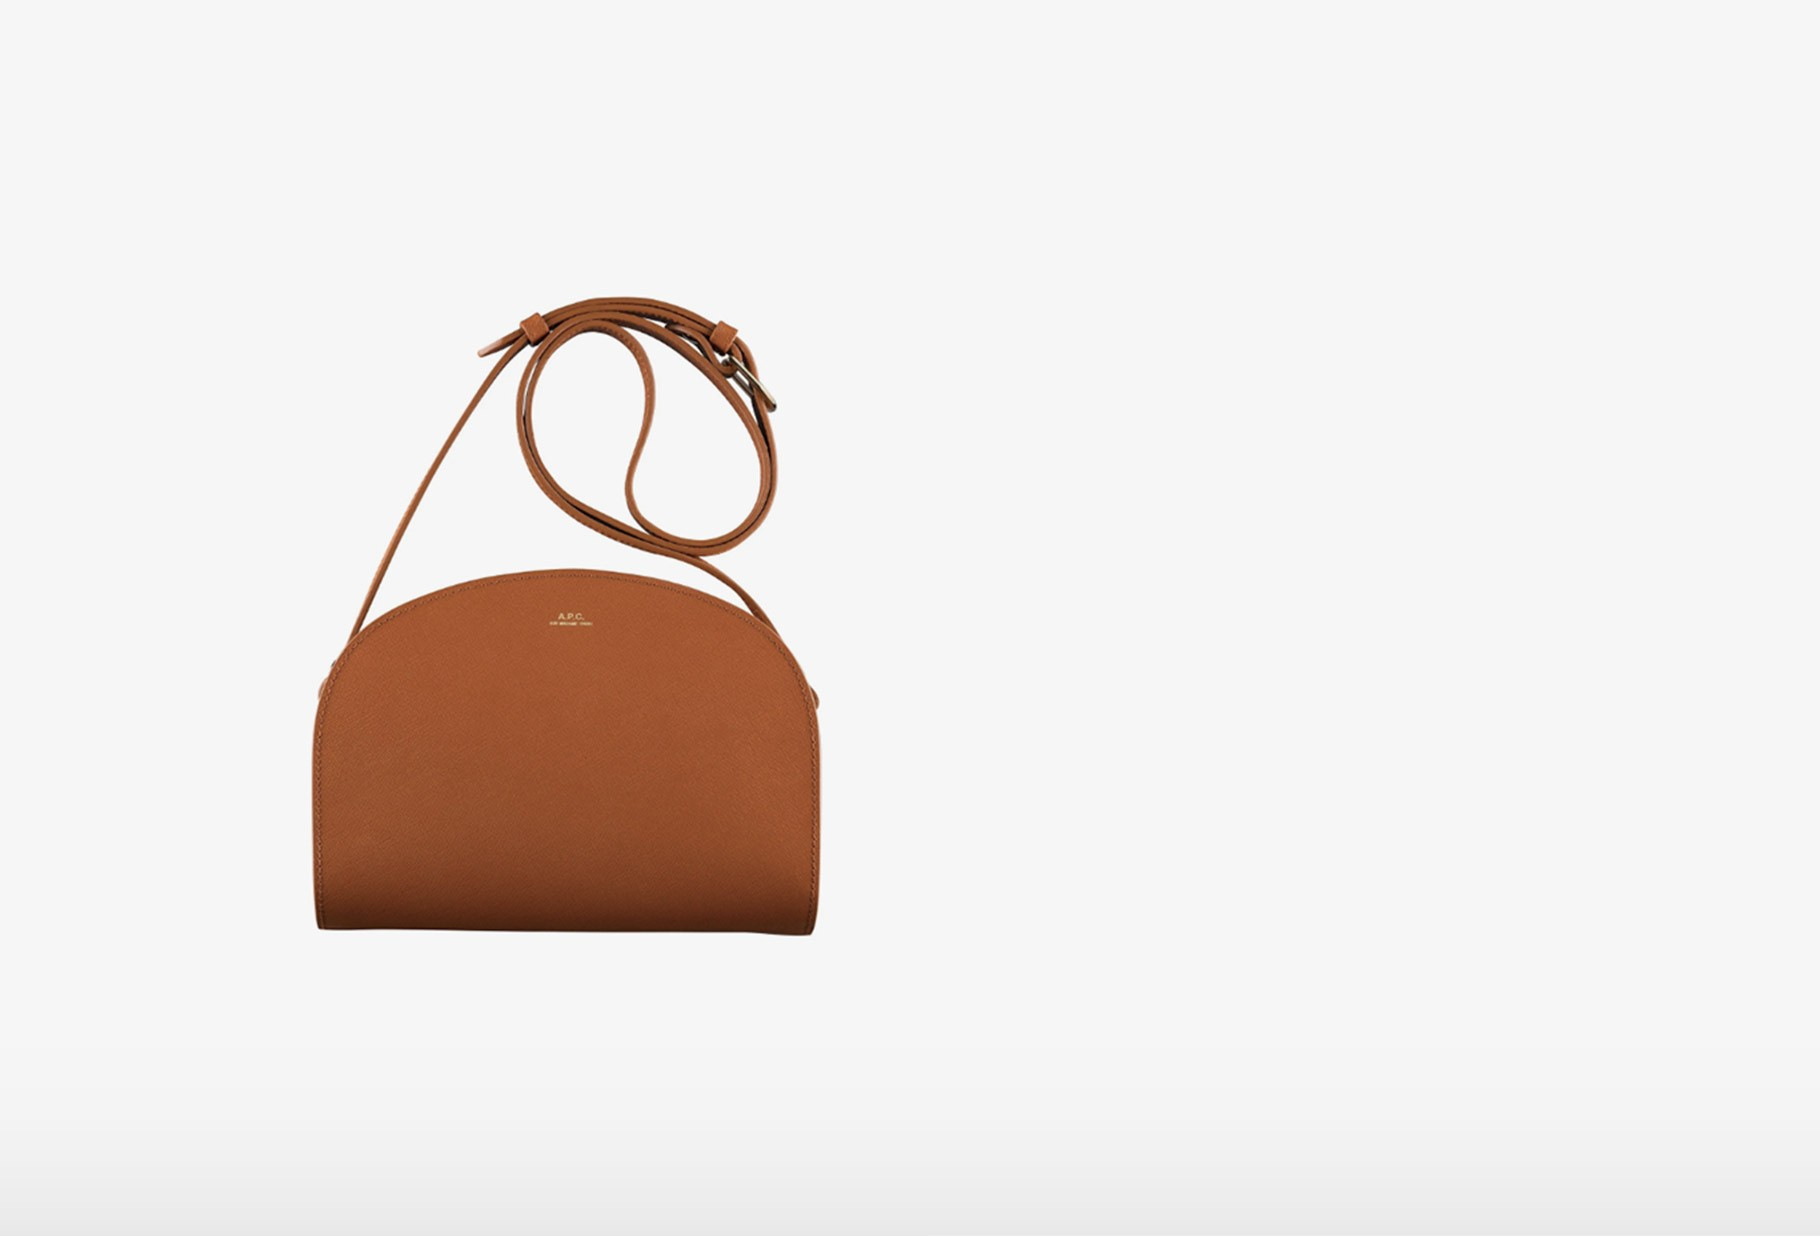 A.P.C. FOR WOMAN / Sac demi-lune embosse Ginger